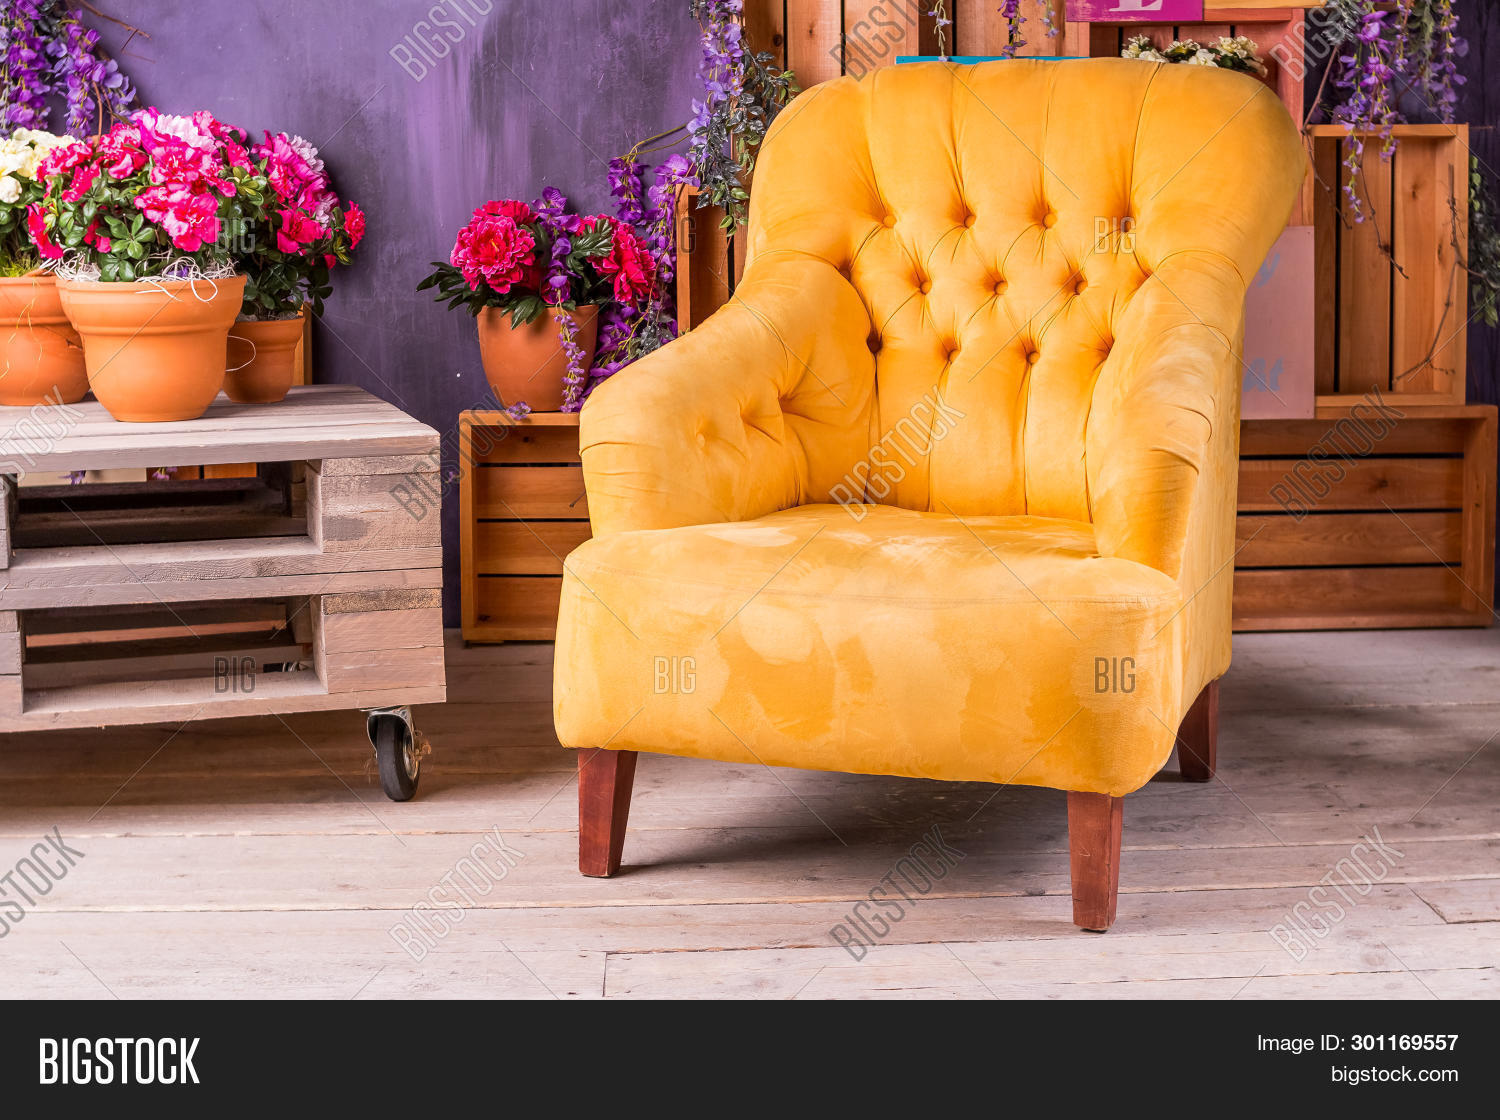 armchair,back,cane,chair,clean,comfortable,concept,cozy,creative,cushion,decor,decoration,design,executive,exterior,floor,furniture,garden,home,house,interior,lamp,living,luxury,modern,new,nobody,office,one,patio,relaxation,render,retro,room,seat,spacious,studio,table,terrace,texture,vintage,wall,wood,yellow